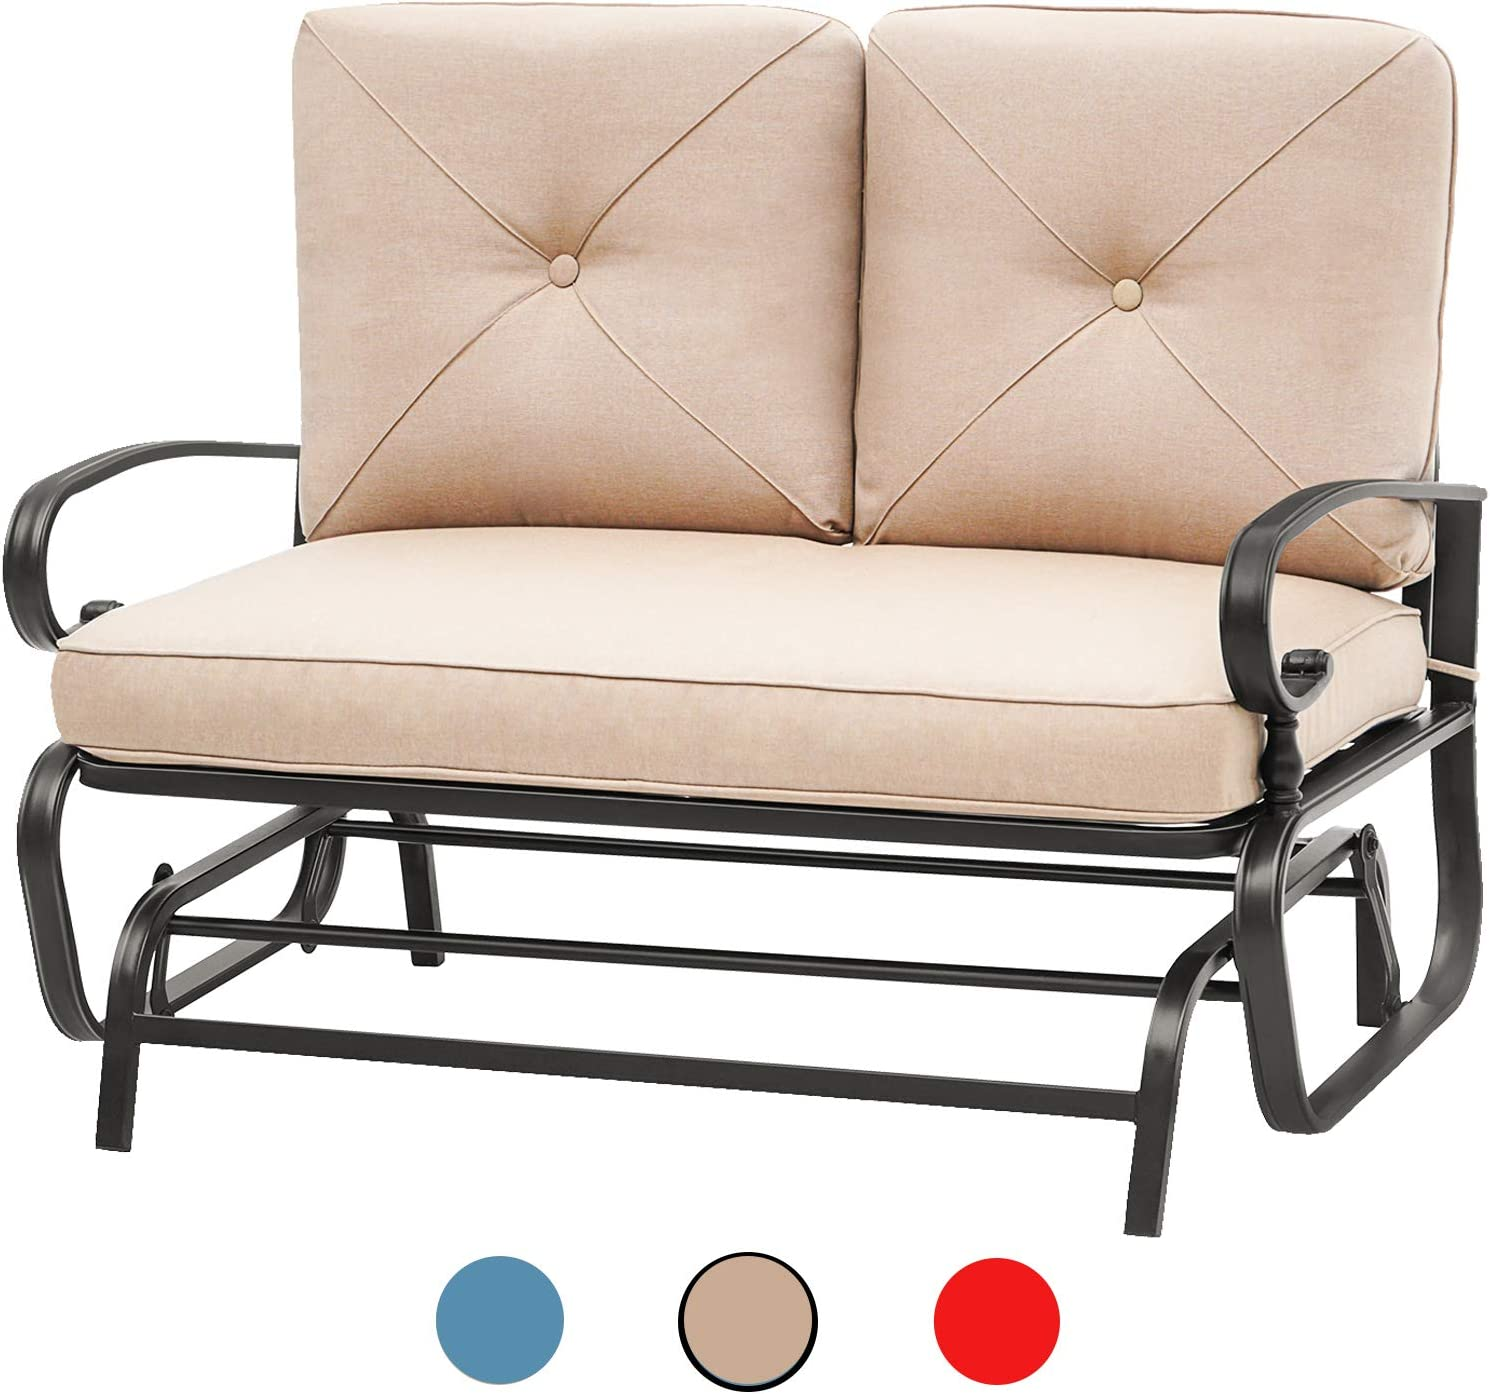 Incbruce Outdoor Swing Glider Rocking Chair Patio Bench for 2 Person, Garden Loveseat Seating Patio Steel Frame Chair Set with Cushion, Brown